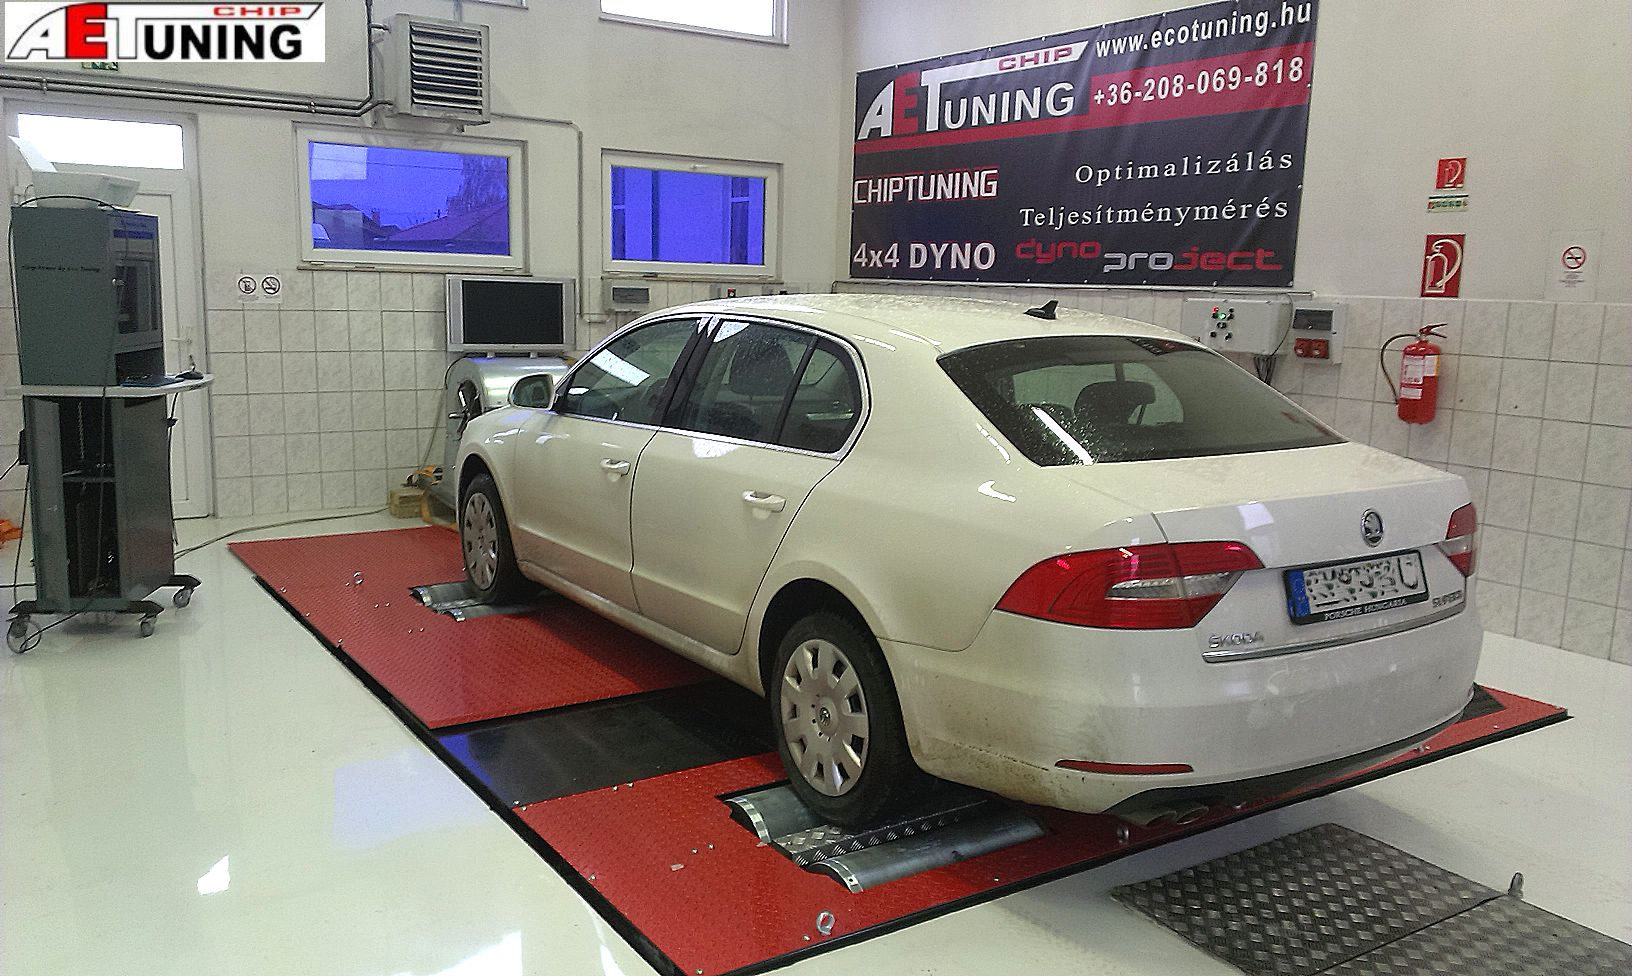 skoda_superb_chip_tuning_referencia_dynoproject_teljesitmenymeres